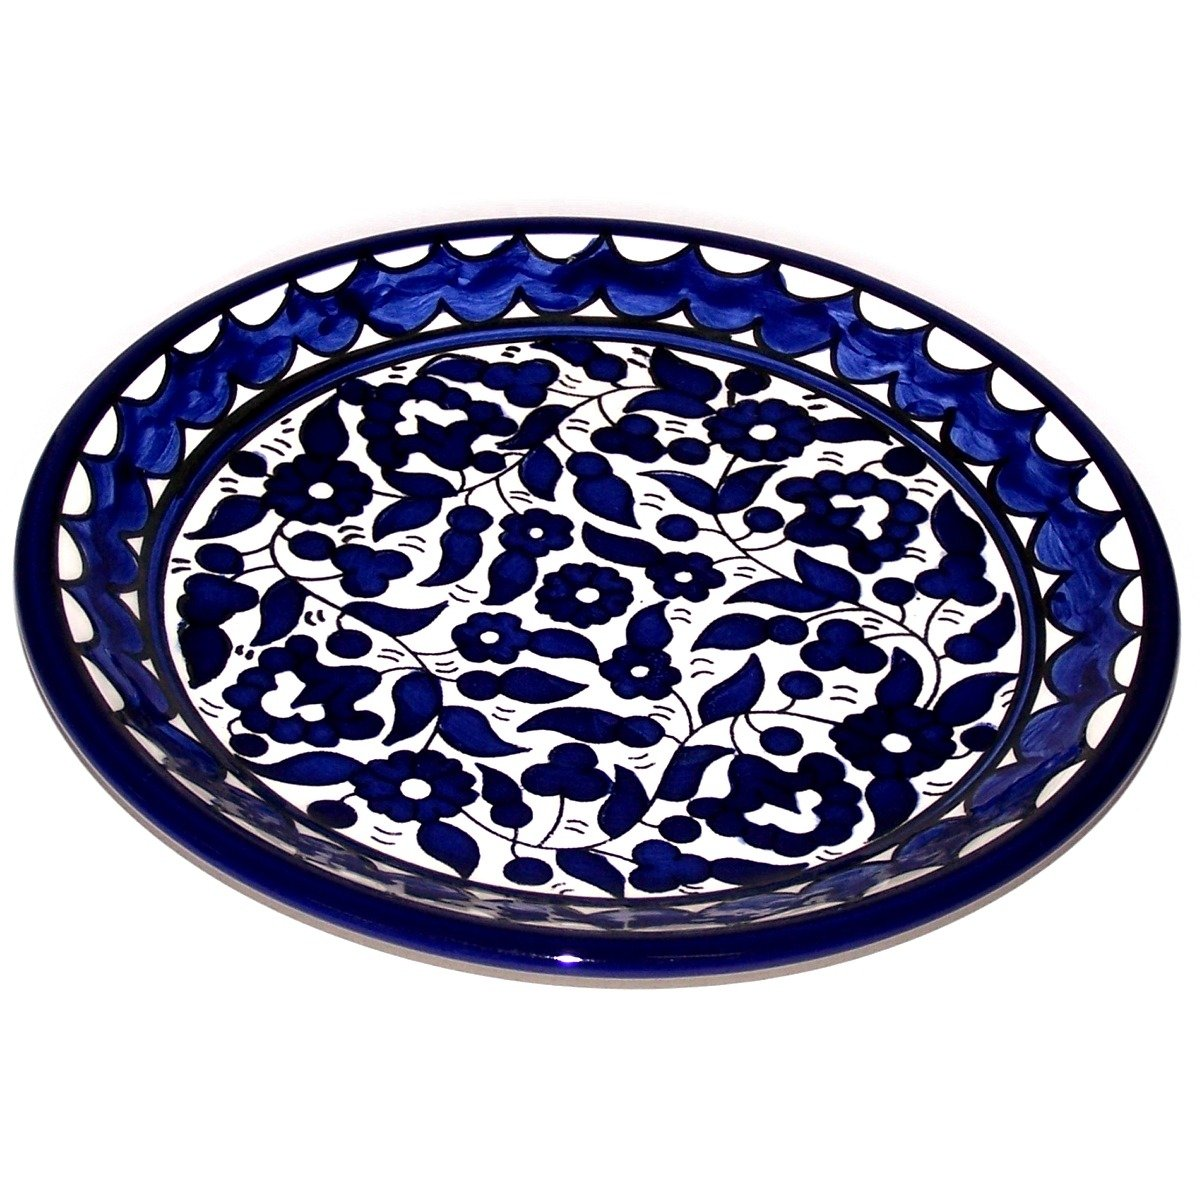 Asfour Outlet 9.5 Inches Armenian Ceramic Decorative Dinner or Display Plate